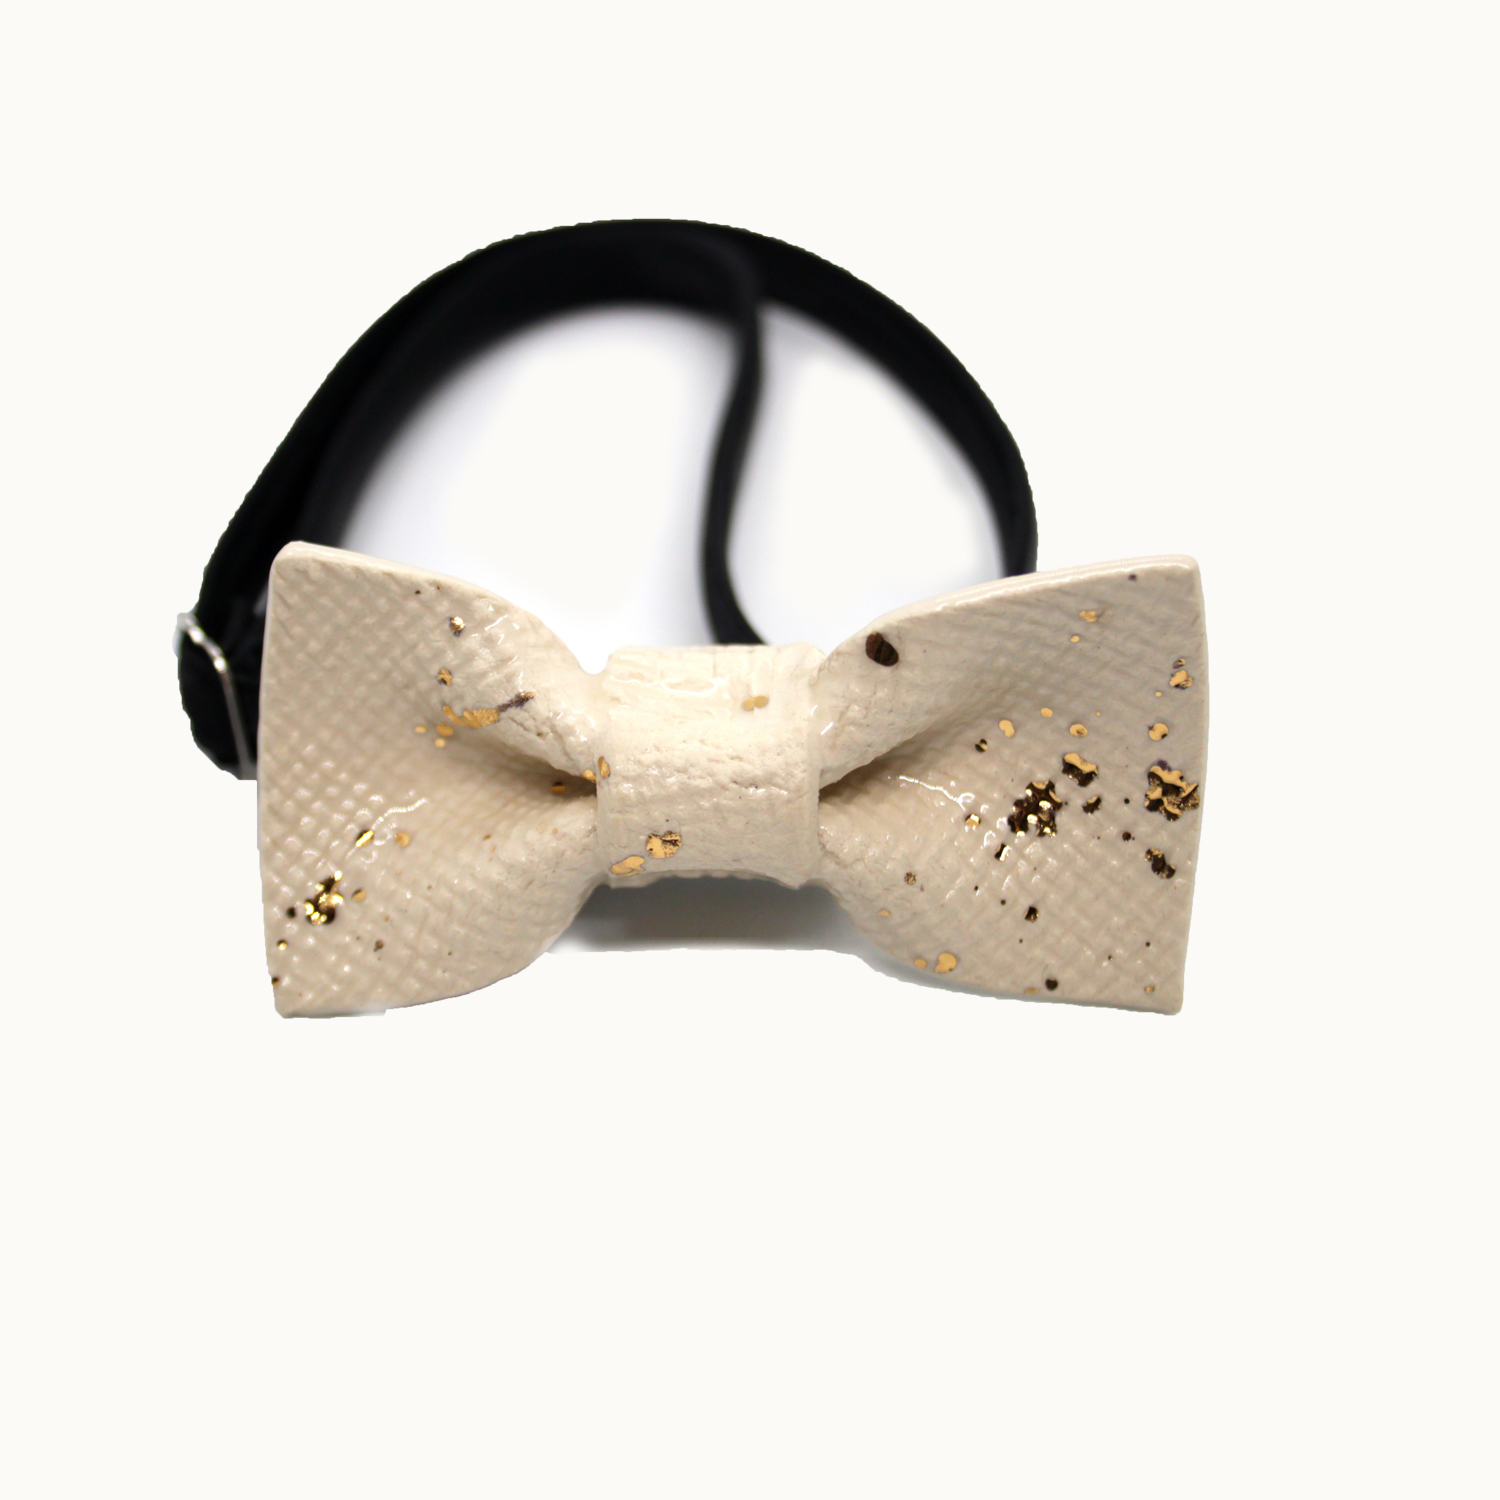 Pajarita de cerámica hecha a mano Mini Bowtery Abuelo ideal para niños y adultos minimalistas en beige y dorado con esmalte de oro. Handmade ceramic bow ties mini golden glaze for kids and minimalist adults